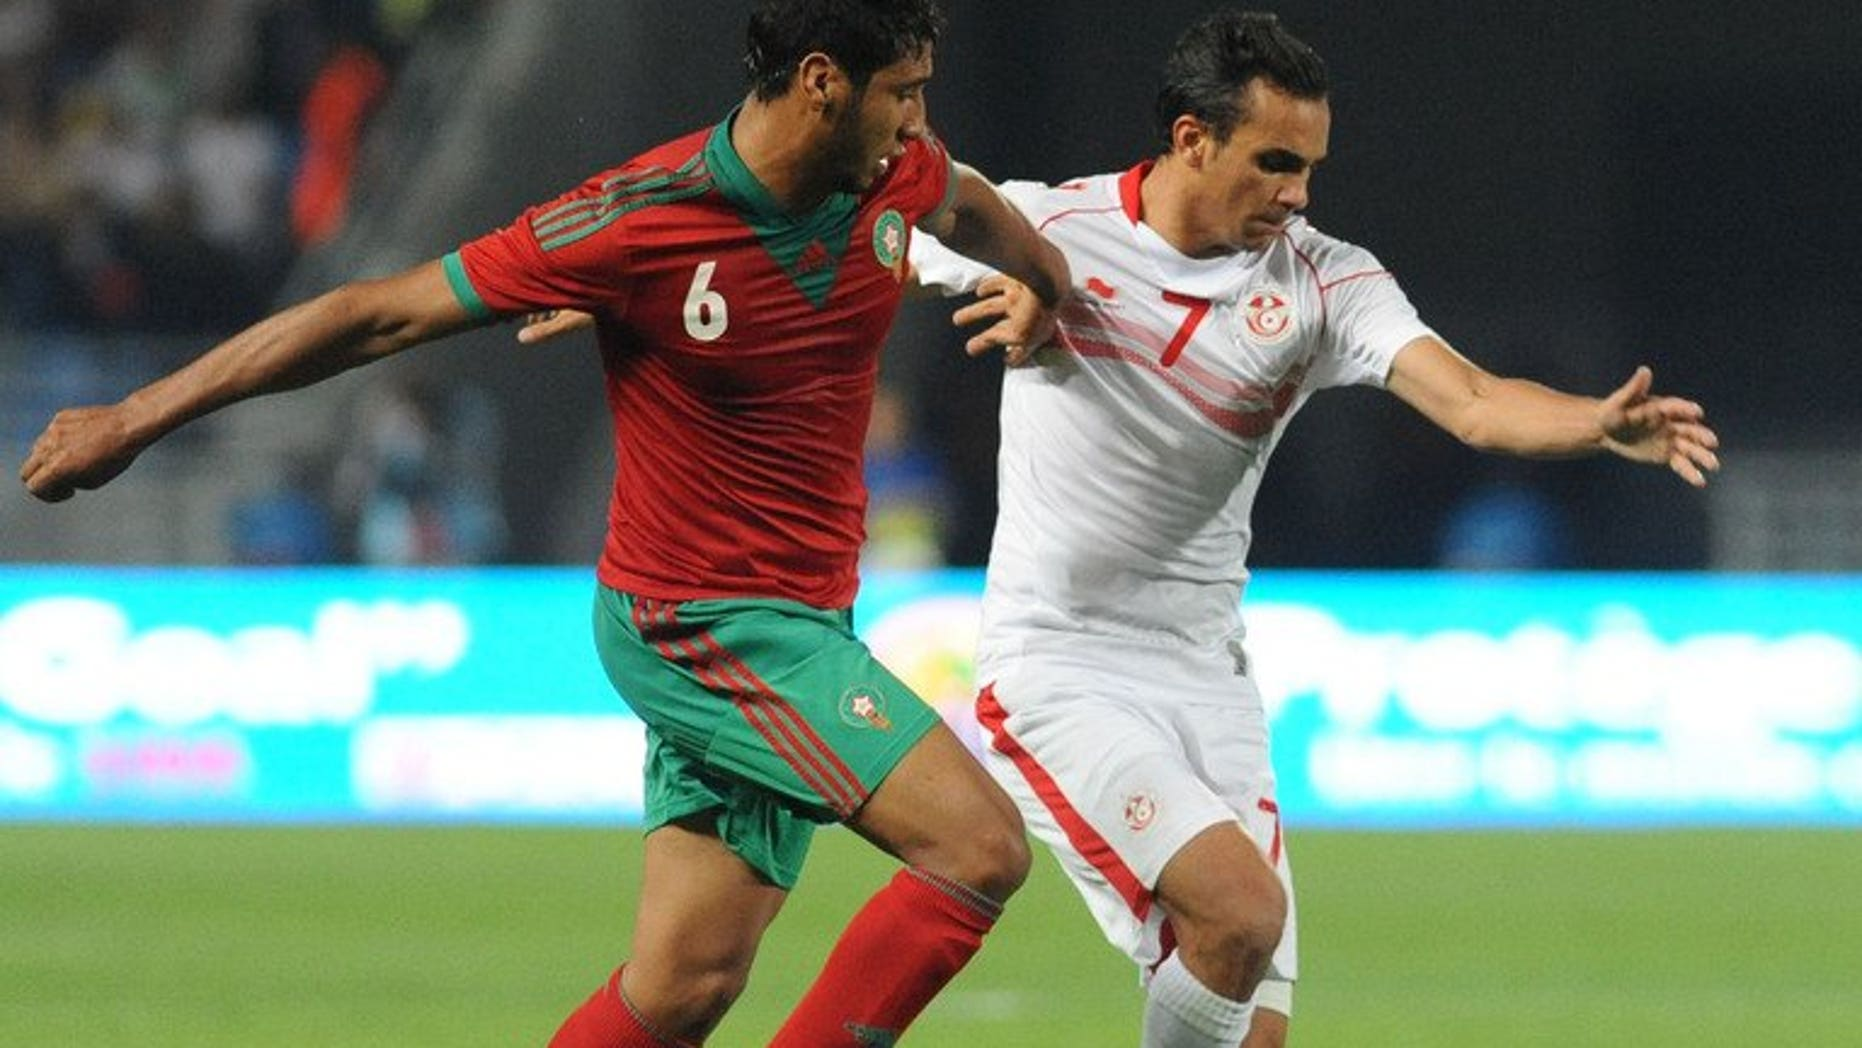 Morocco's Benjelloun Abdessamad (left) vies for the ball with Tunisia's Mhirsi Driss during the African Nations Championship qualifying match on July 13, 2013. Holders Tunisia were eliminated in the first qualifying round after drawing 0-0.